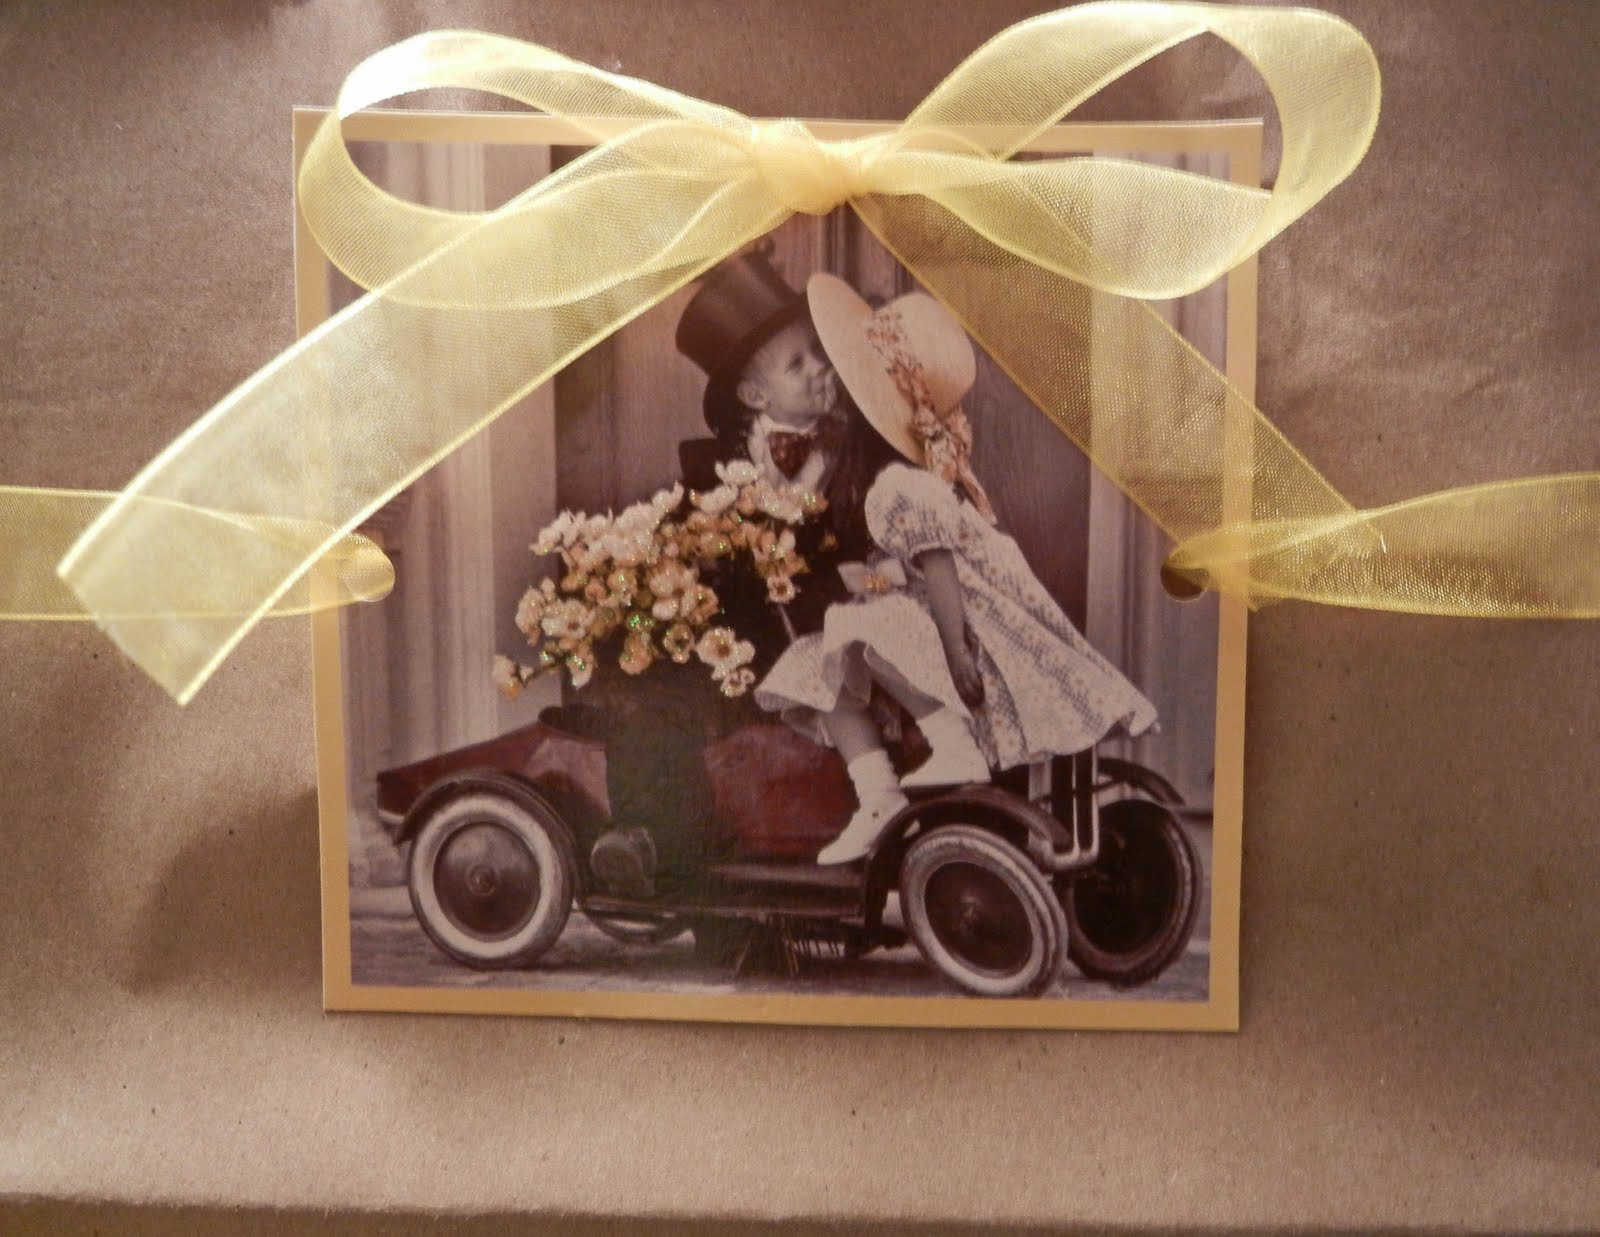 Voila Wedding Gift Bags : Voila! A personalized wedding gift bag.